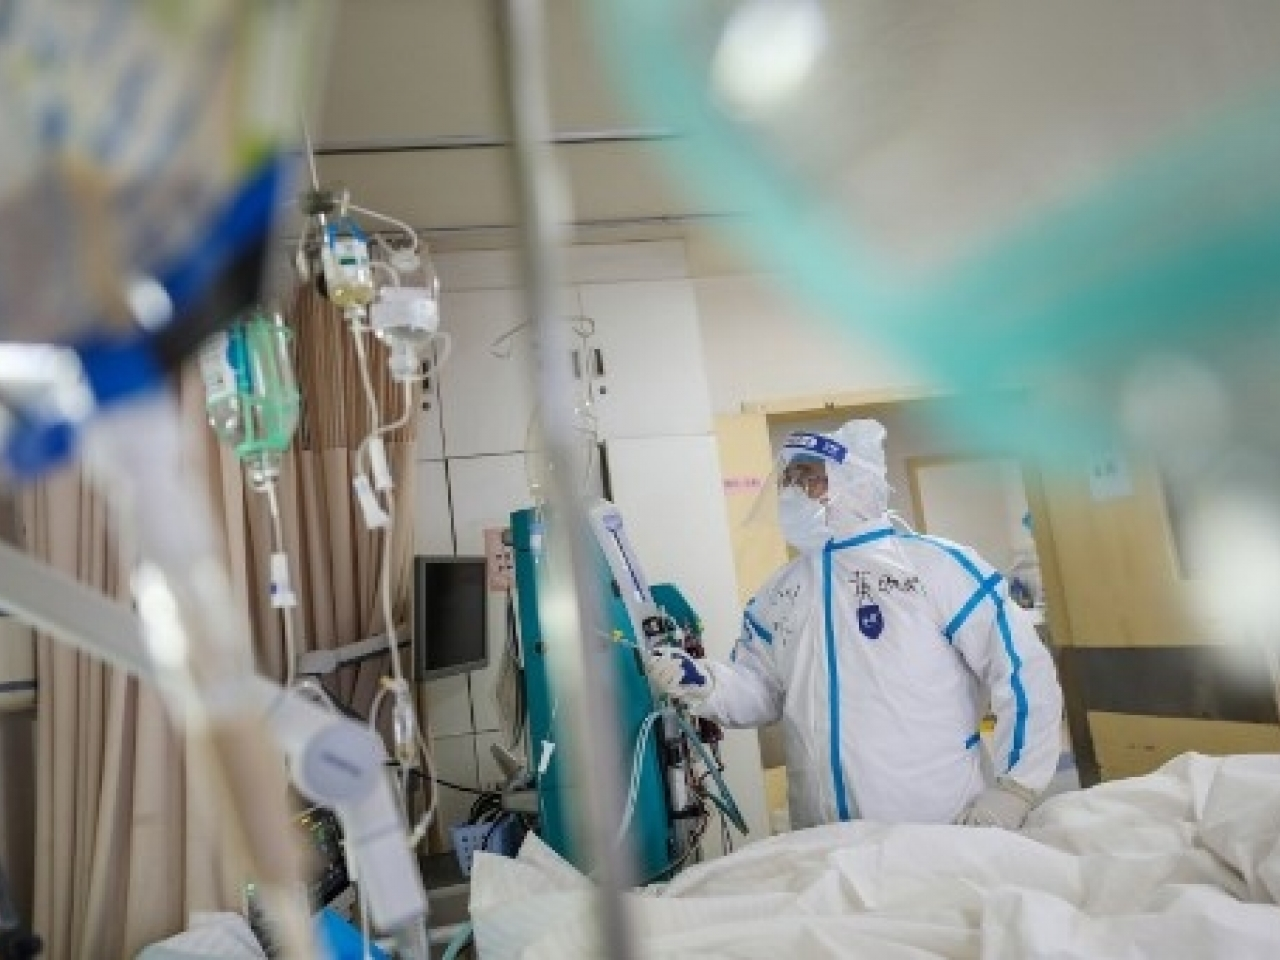 Scientists find coronavirus in the air of two Wuhan hospitals